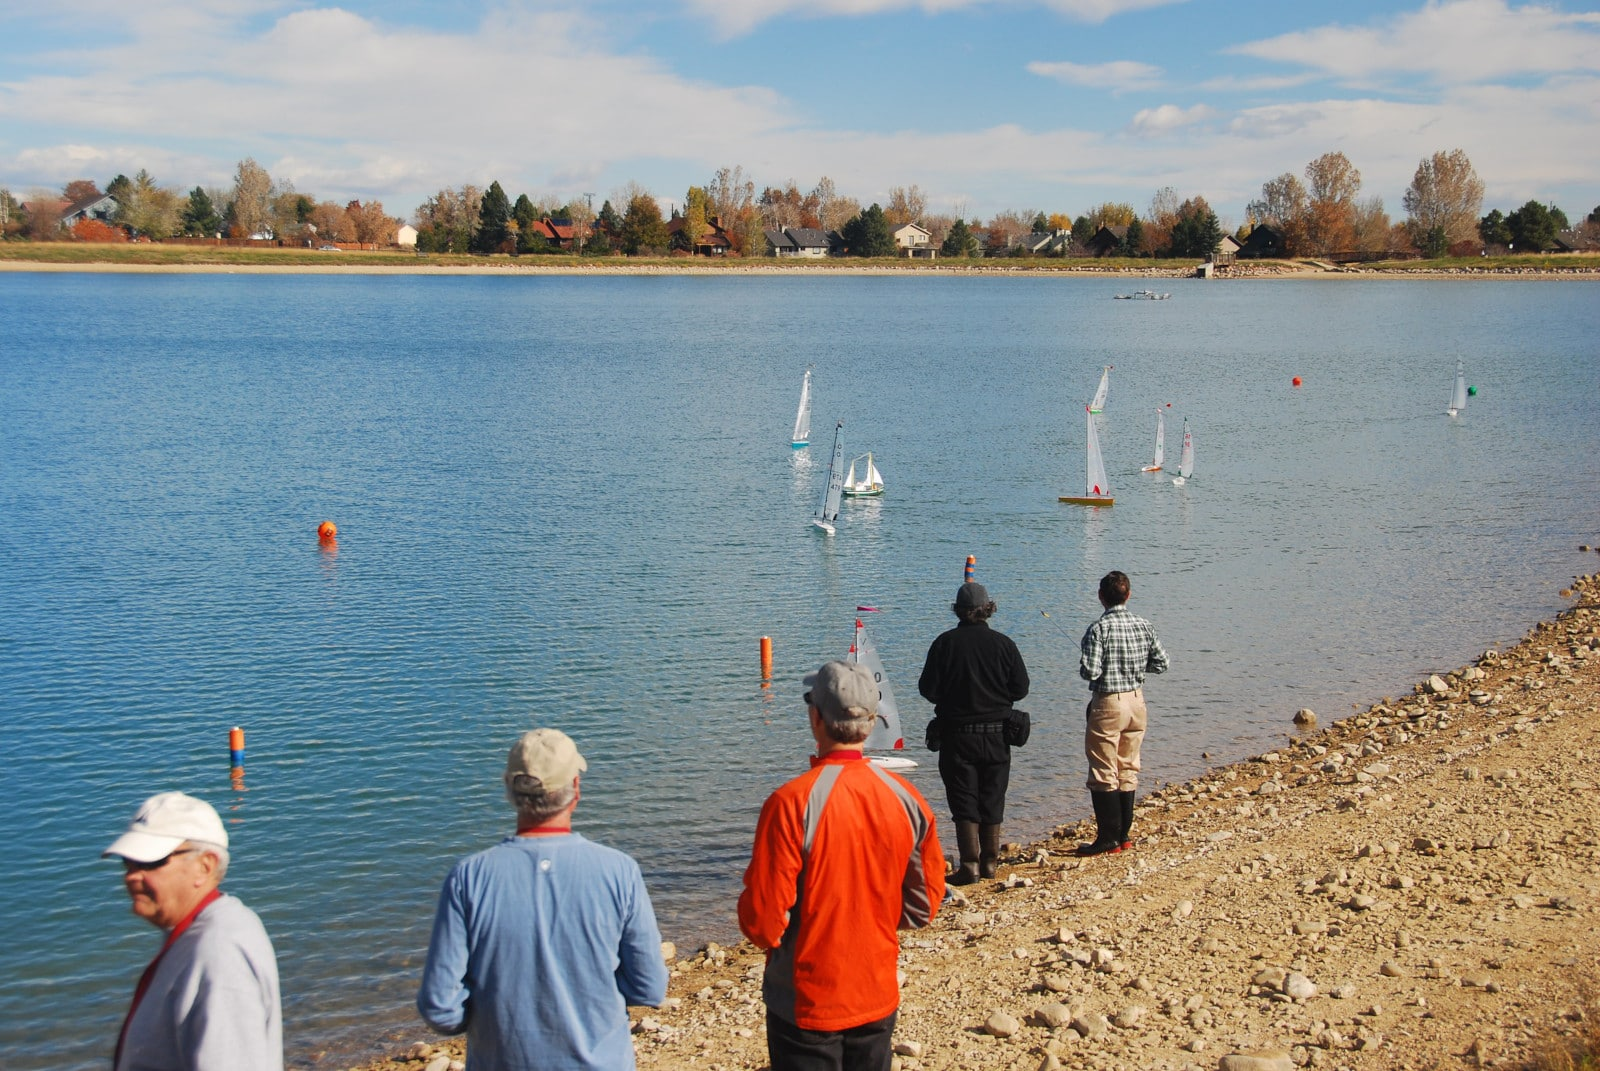 Image of the model yacht club at Harper Lake in Louisville, Colorado